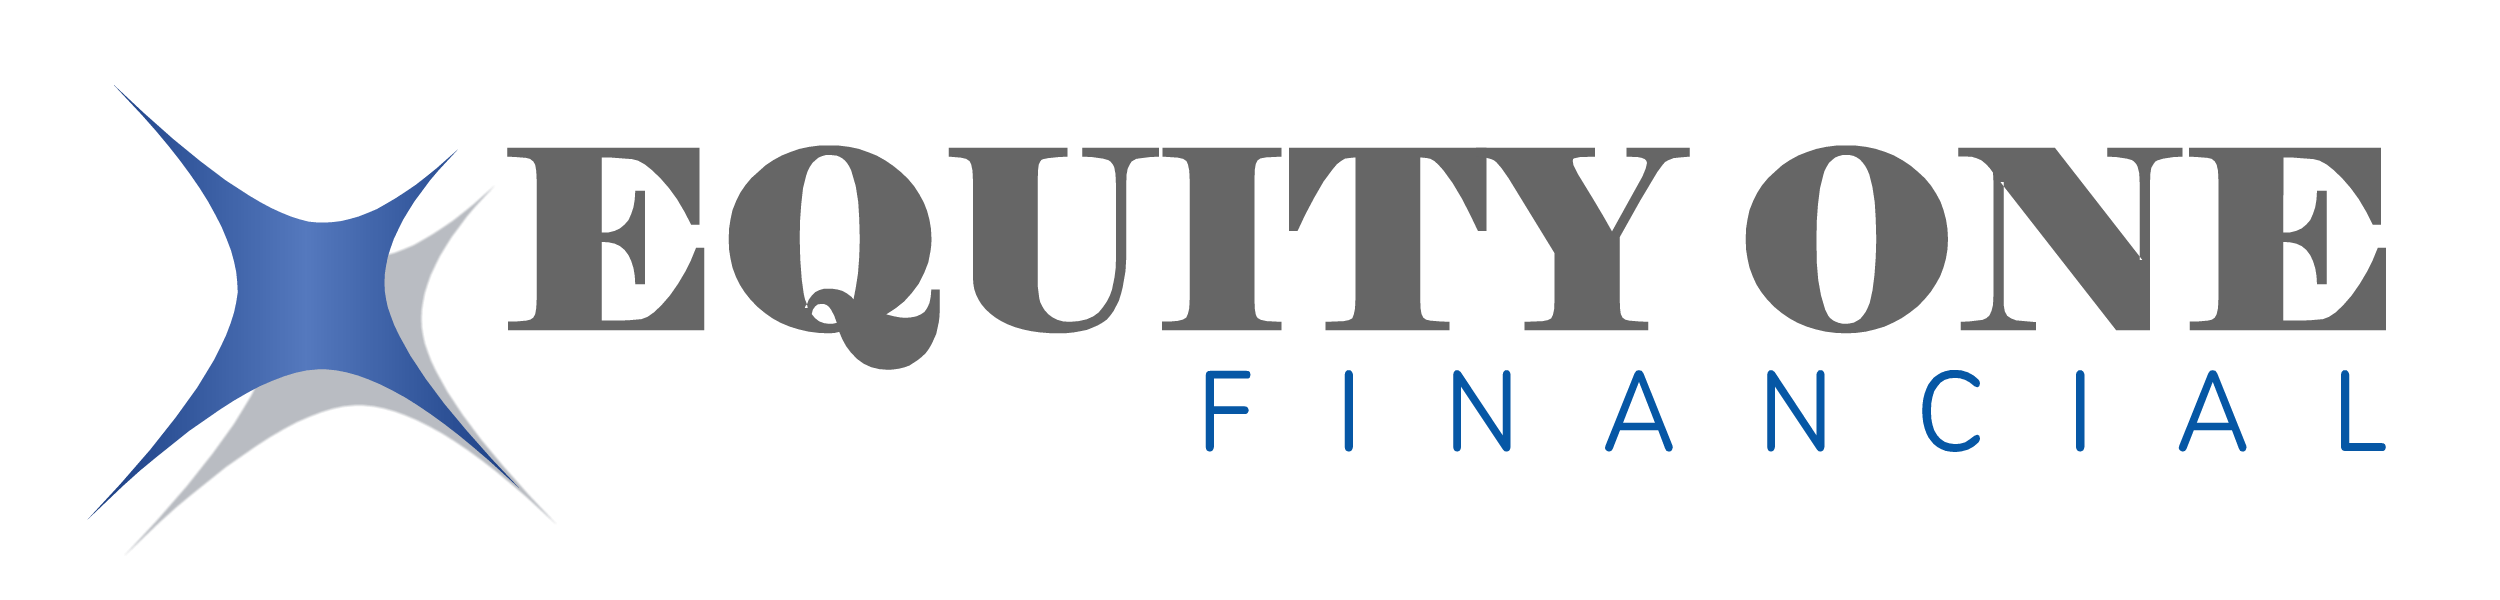 Equity One Financial